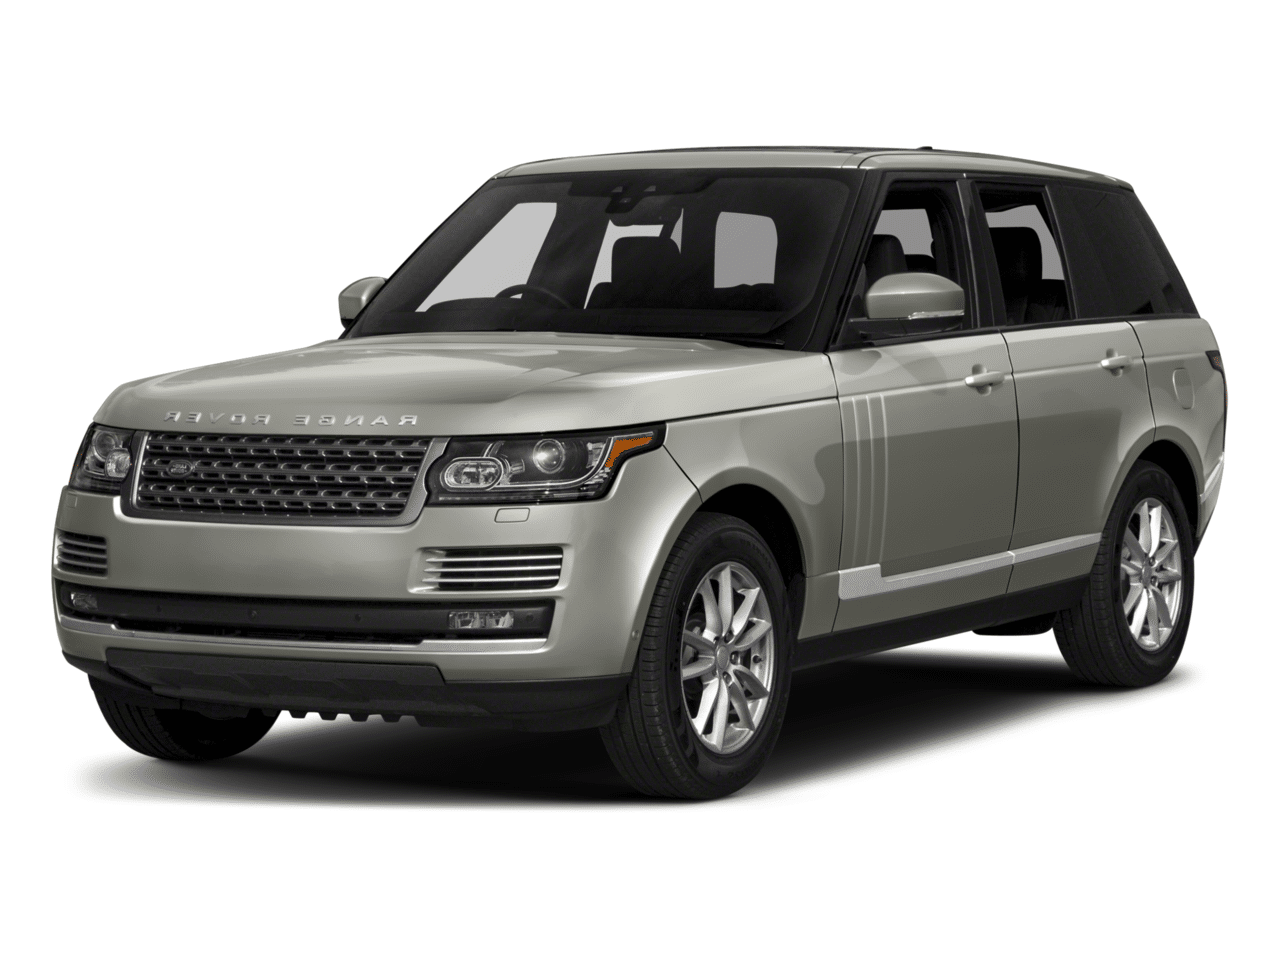 Pacific-Car-Rentals-Luxury-Supercharged-SUV-Range-Rover-Supercharged